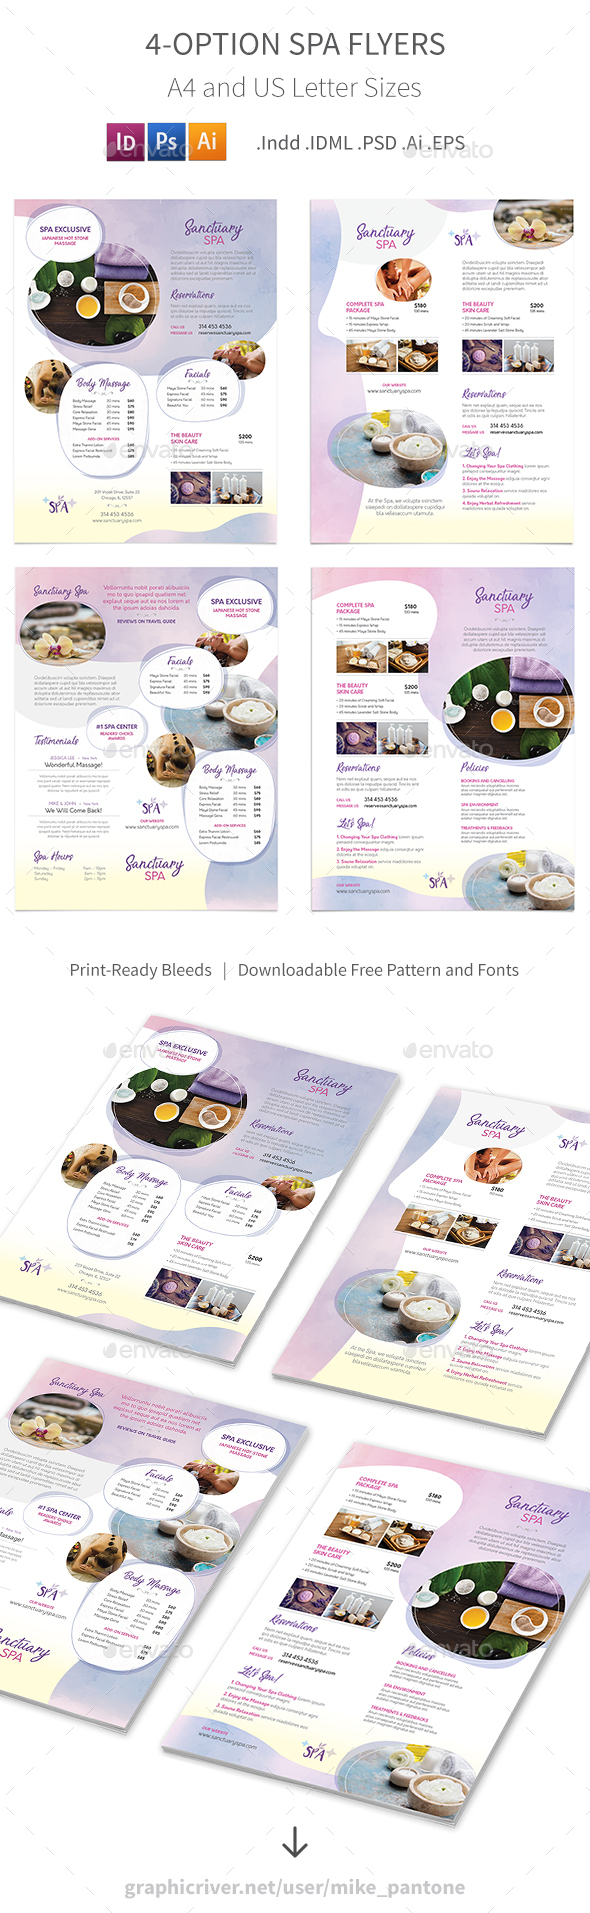 Spa Flyers 7 – 4 Options - Corporate Flyers